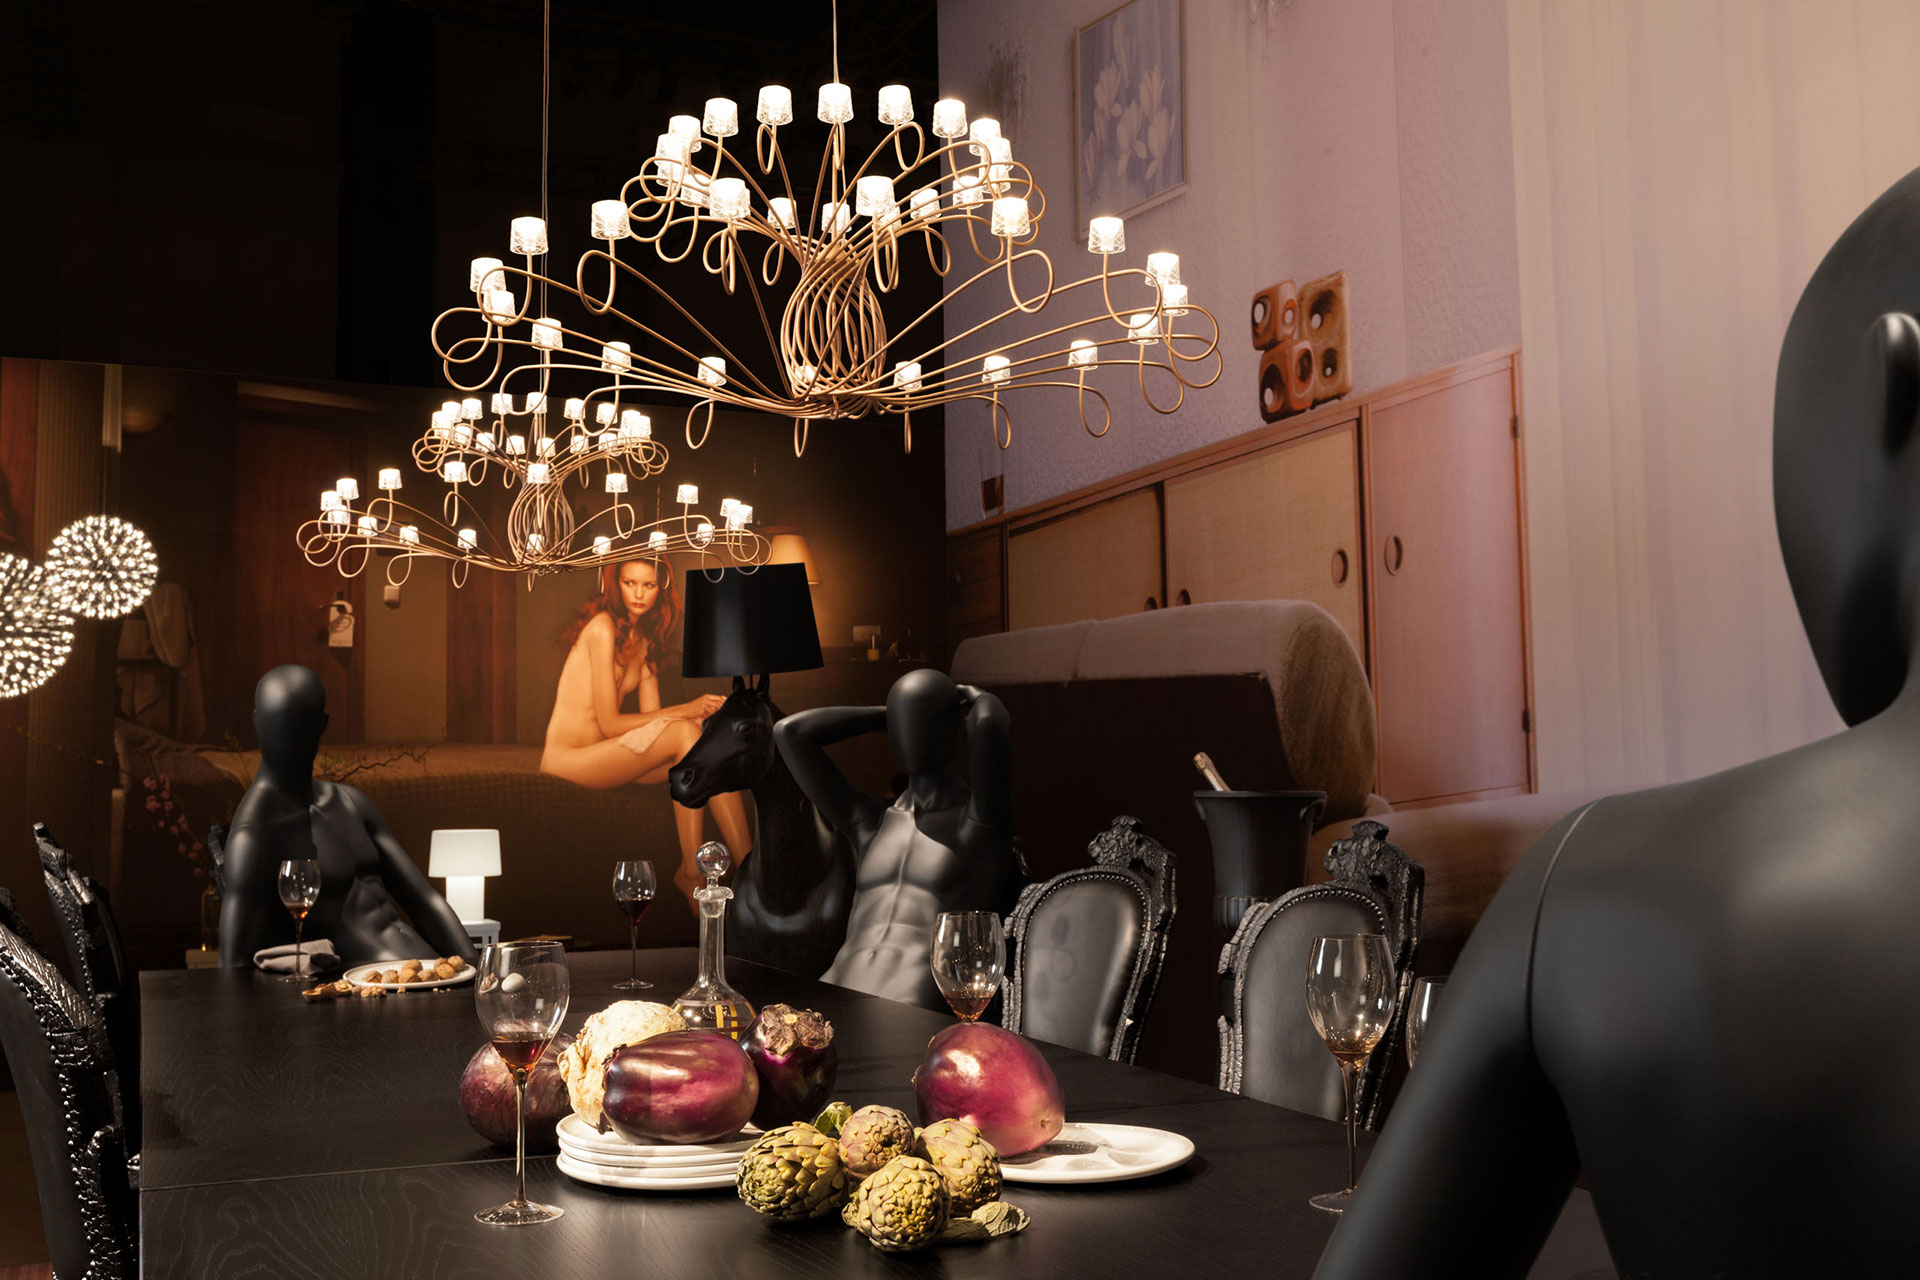 A surreal dinner party scene from the 2013 Milan Moooi exhibit. Photo:Peer Lindgreen